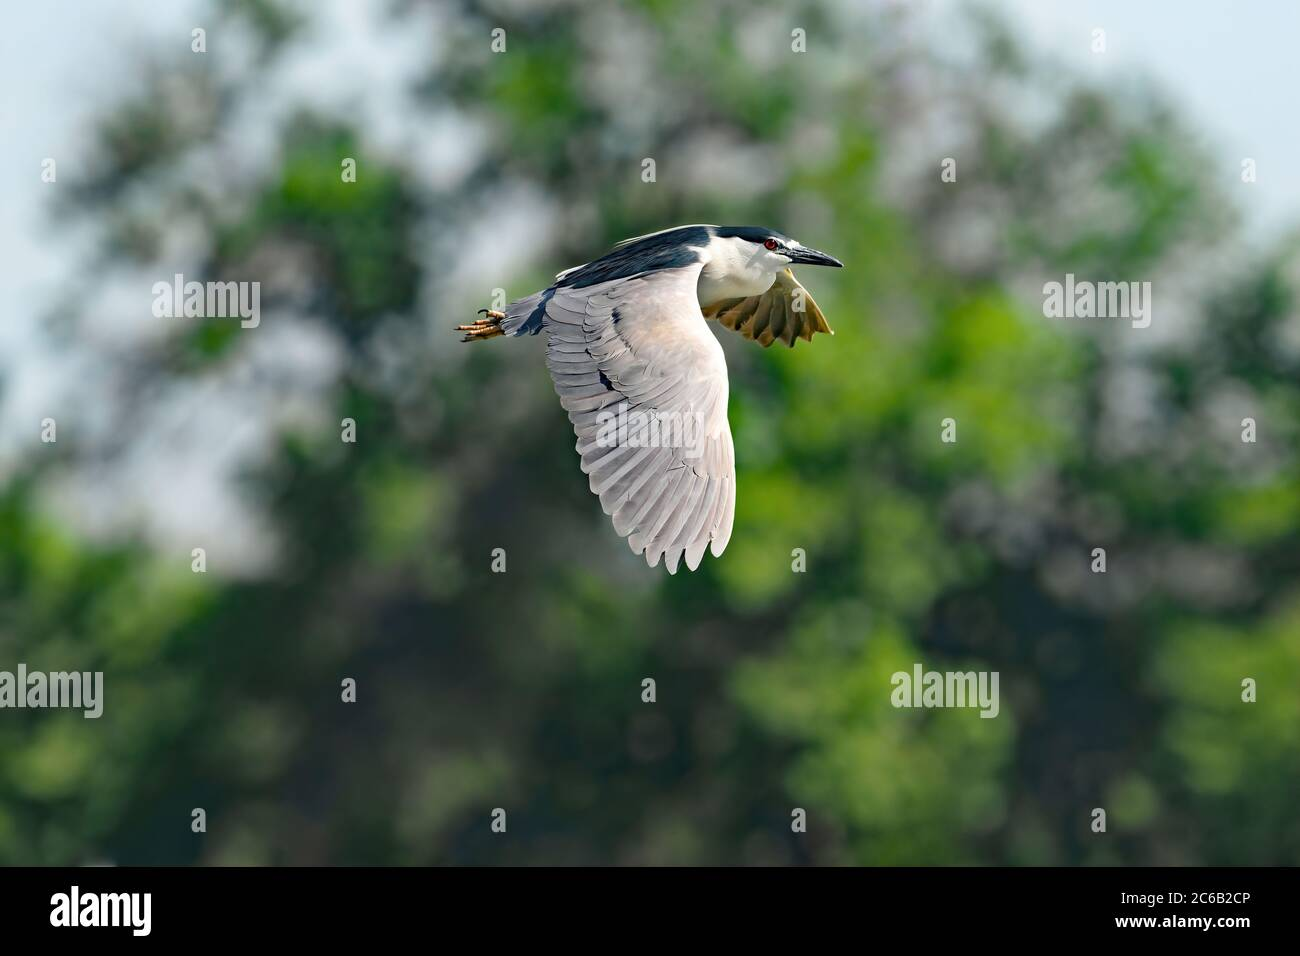 Black-crowned Night Heron with large wings and a bright red eye flies by tall mature green trees in Denver City Park, Colorado. Stock Photo